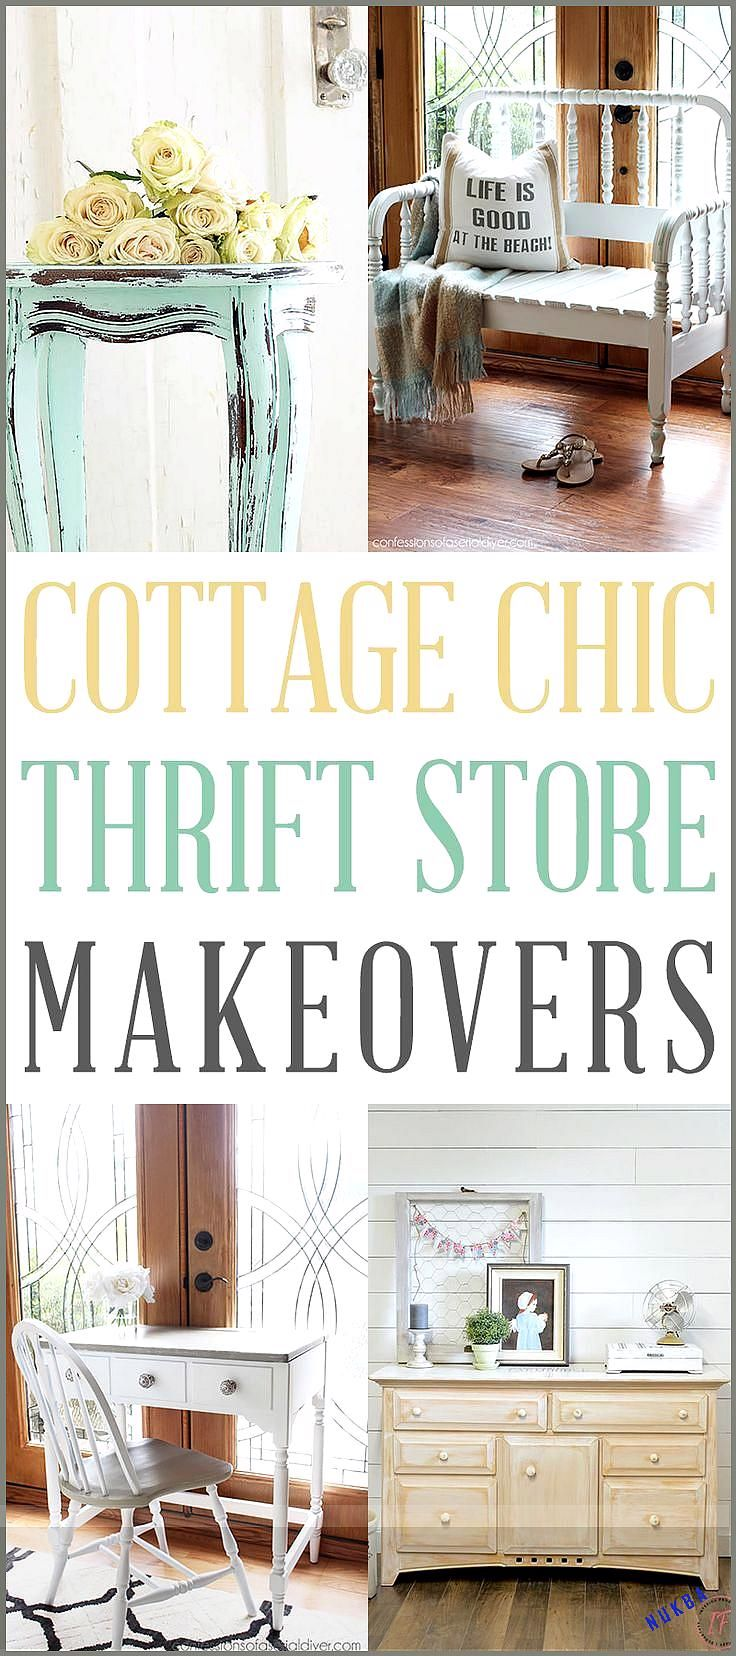 Cottage Chic Farmhouse Thrift Store Makeovers - The Cottage Market